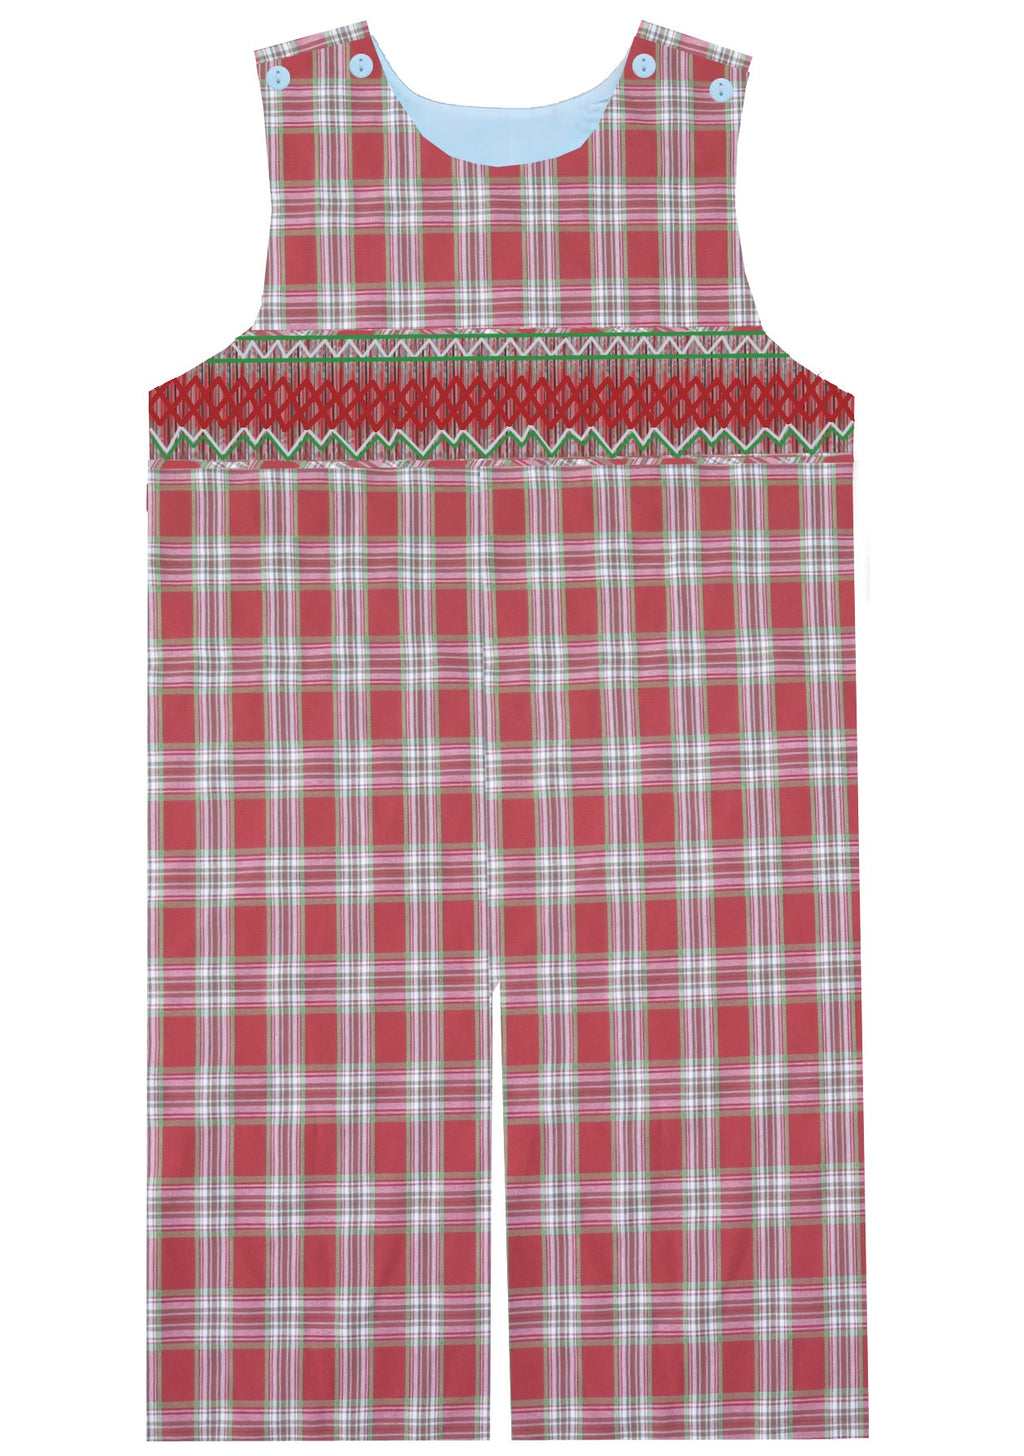 2019 Plaid Christmas Longall